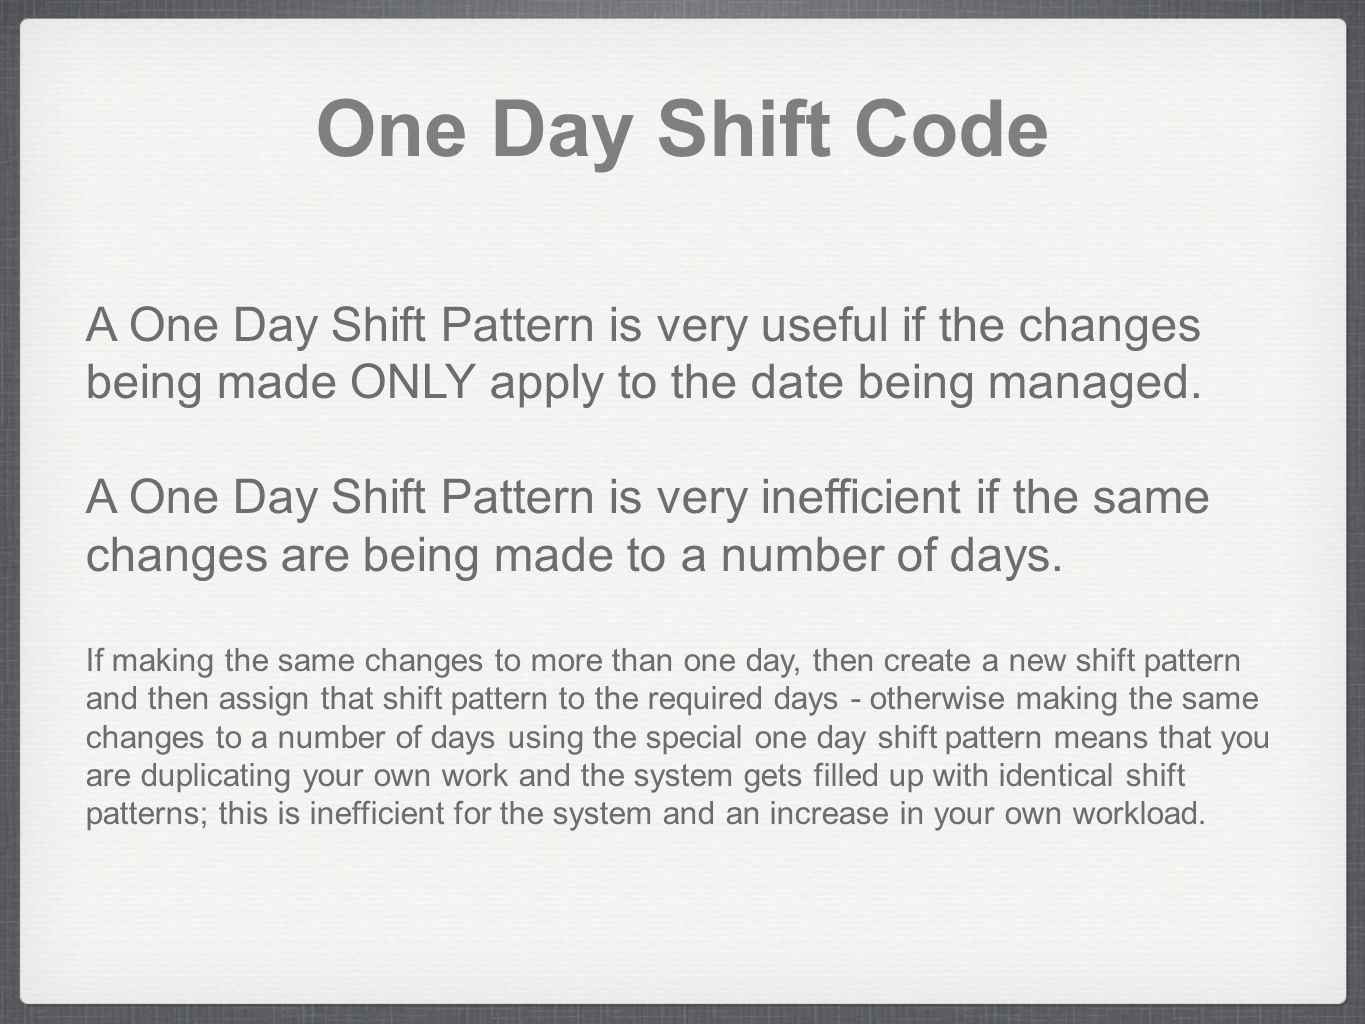 One Day Shift Code A One Day Shift Pattern is very useful if the changes being made ONLY apply to the date being managed.